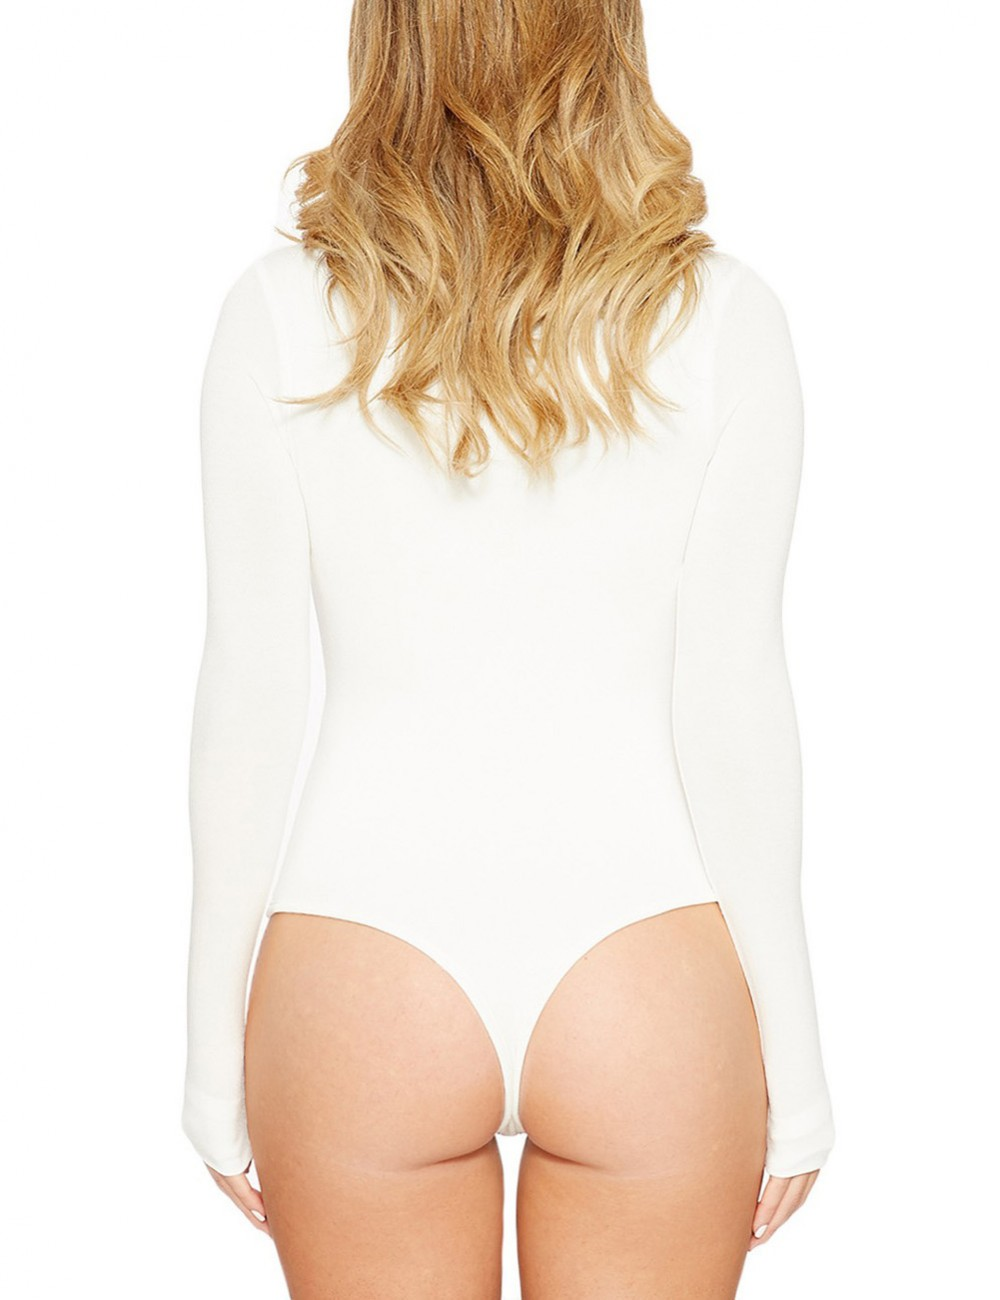 Stretch White Pure Color Bodysuit Long Sleeved Large Size At Great Prices